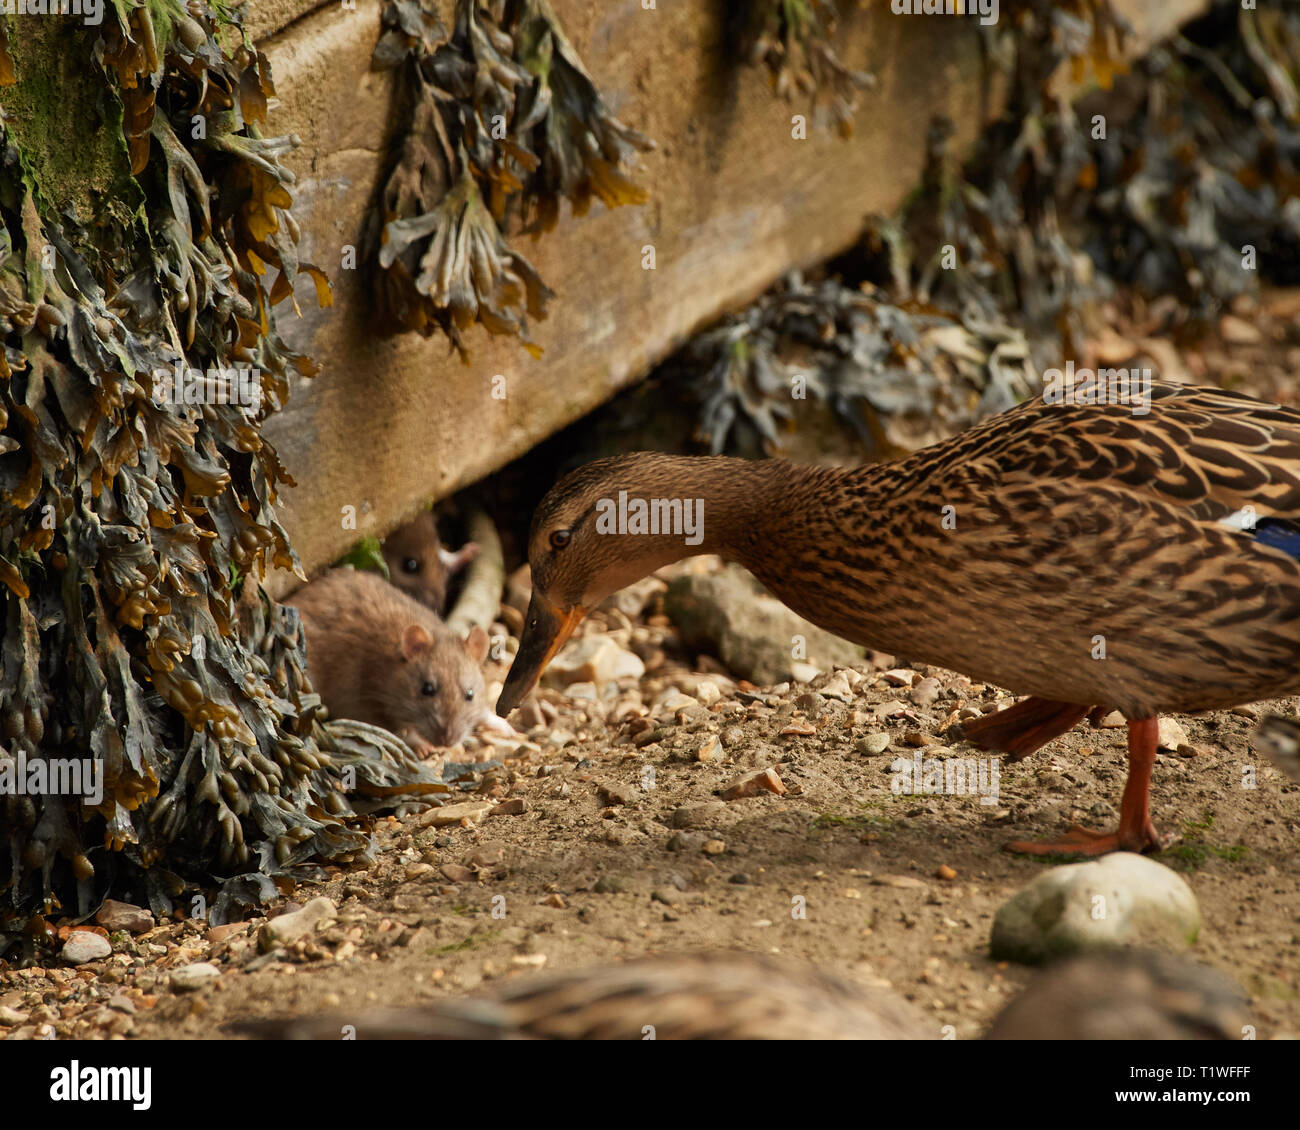 Pastel and charming scene of a duck and small rats in close proximity. Feeding together on seeds in coastal scene. - Stock Image